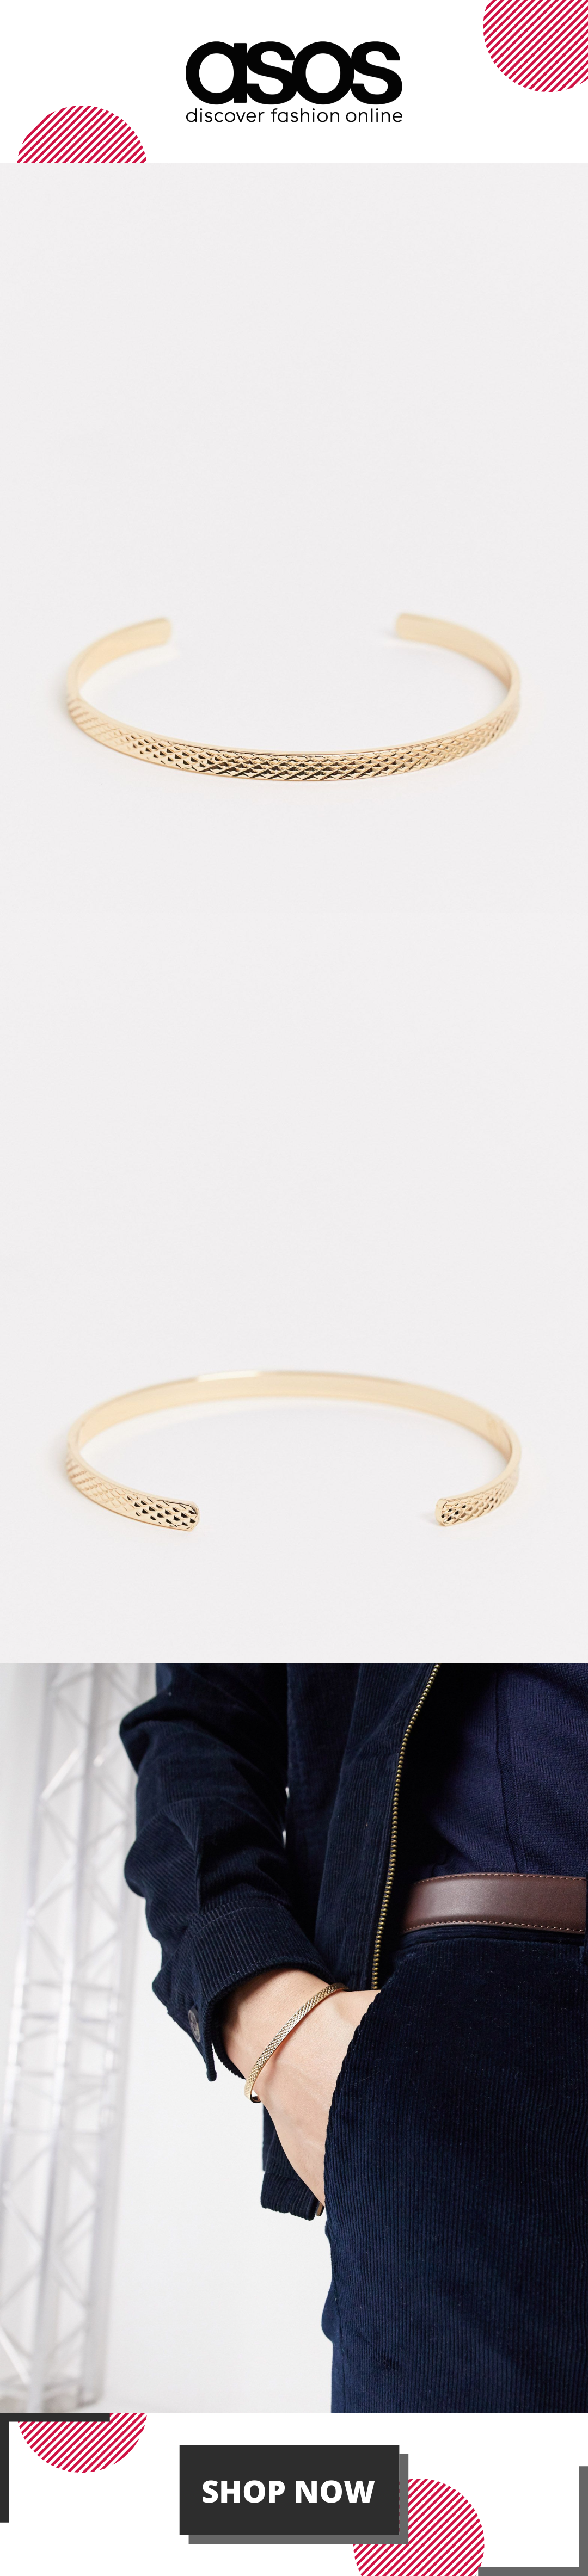 ASOS DESIGN diamond cut bangle in gold tone